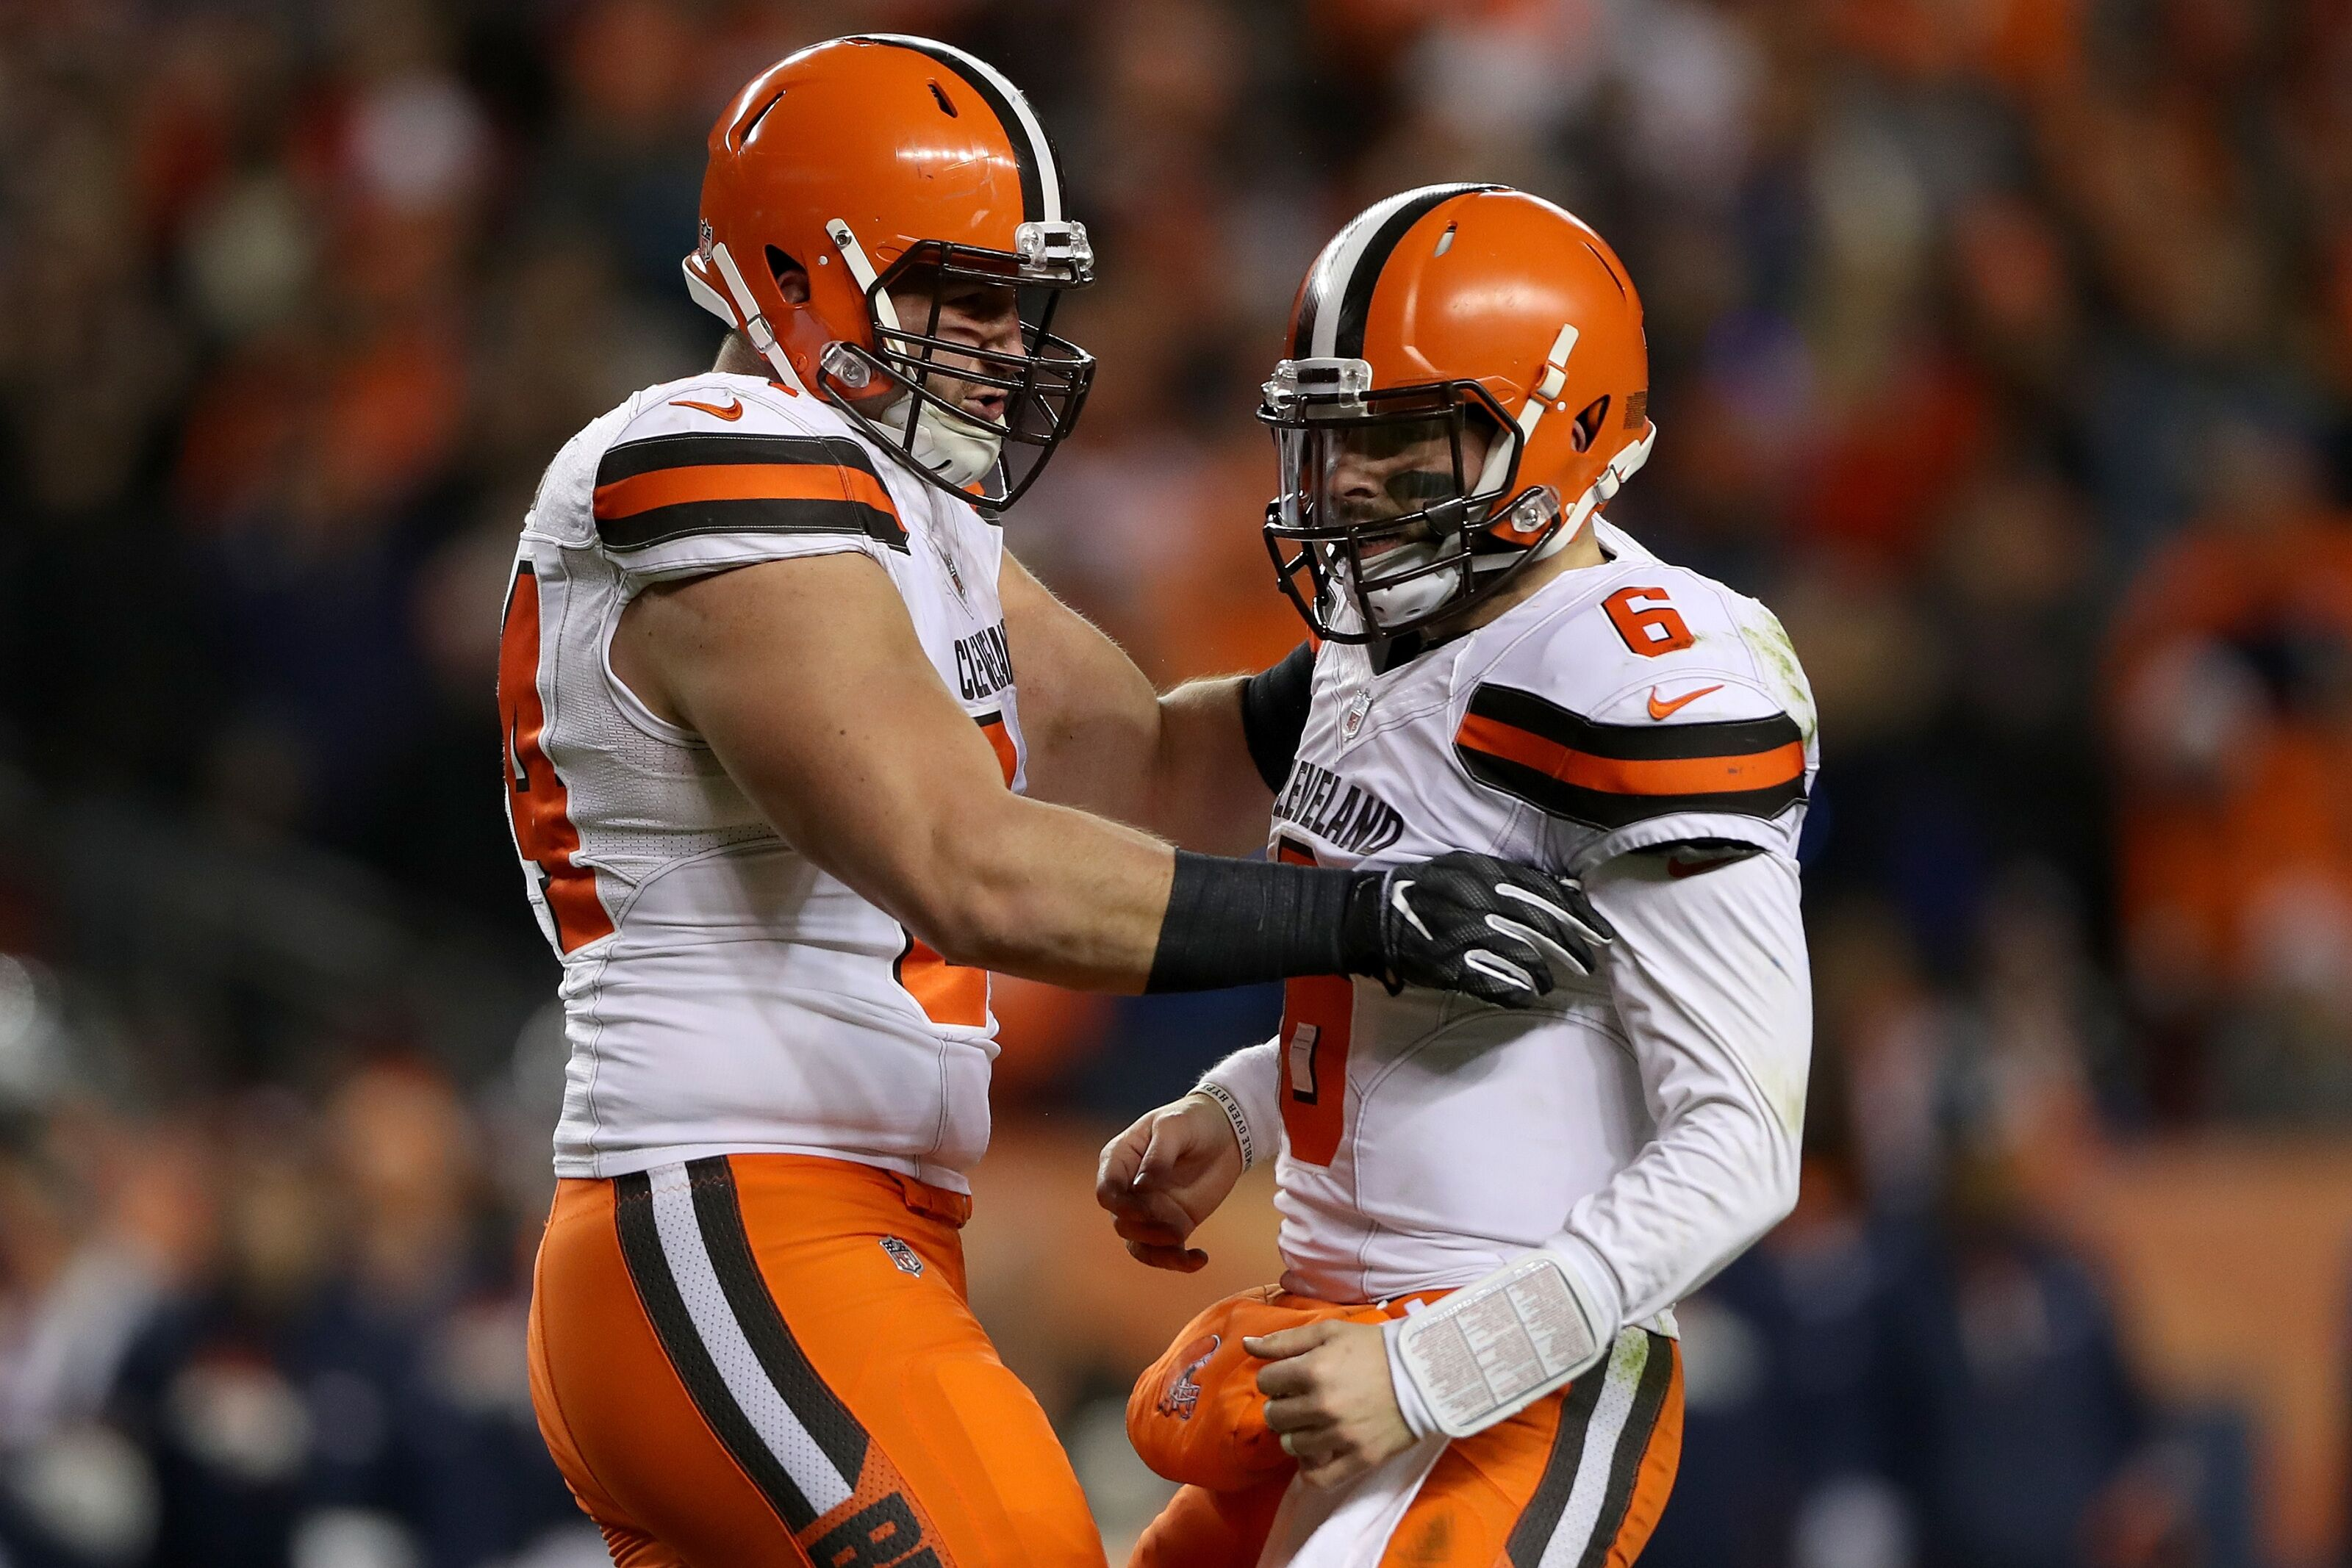 Cleveland Browns: NFL exec says any success will be 'Fleeting'